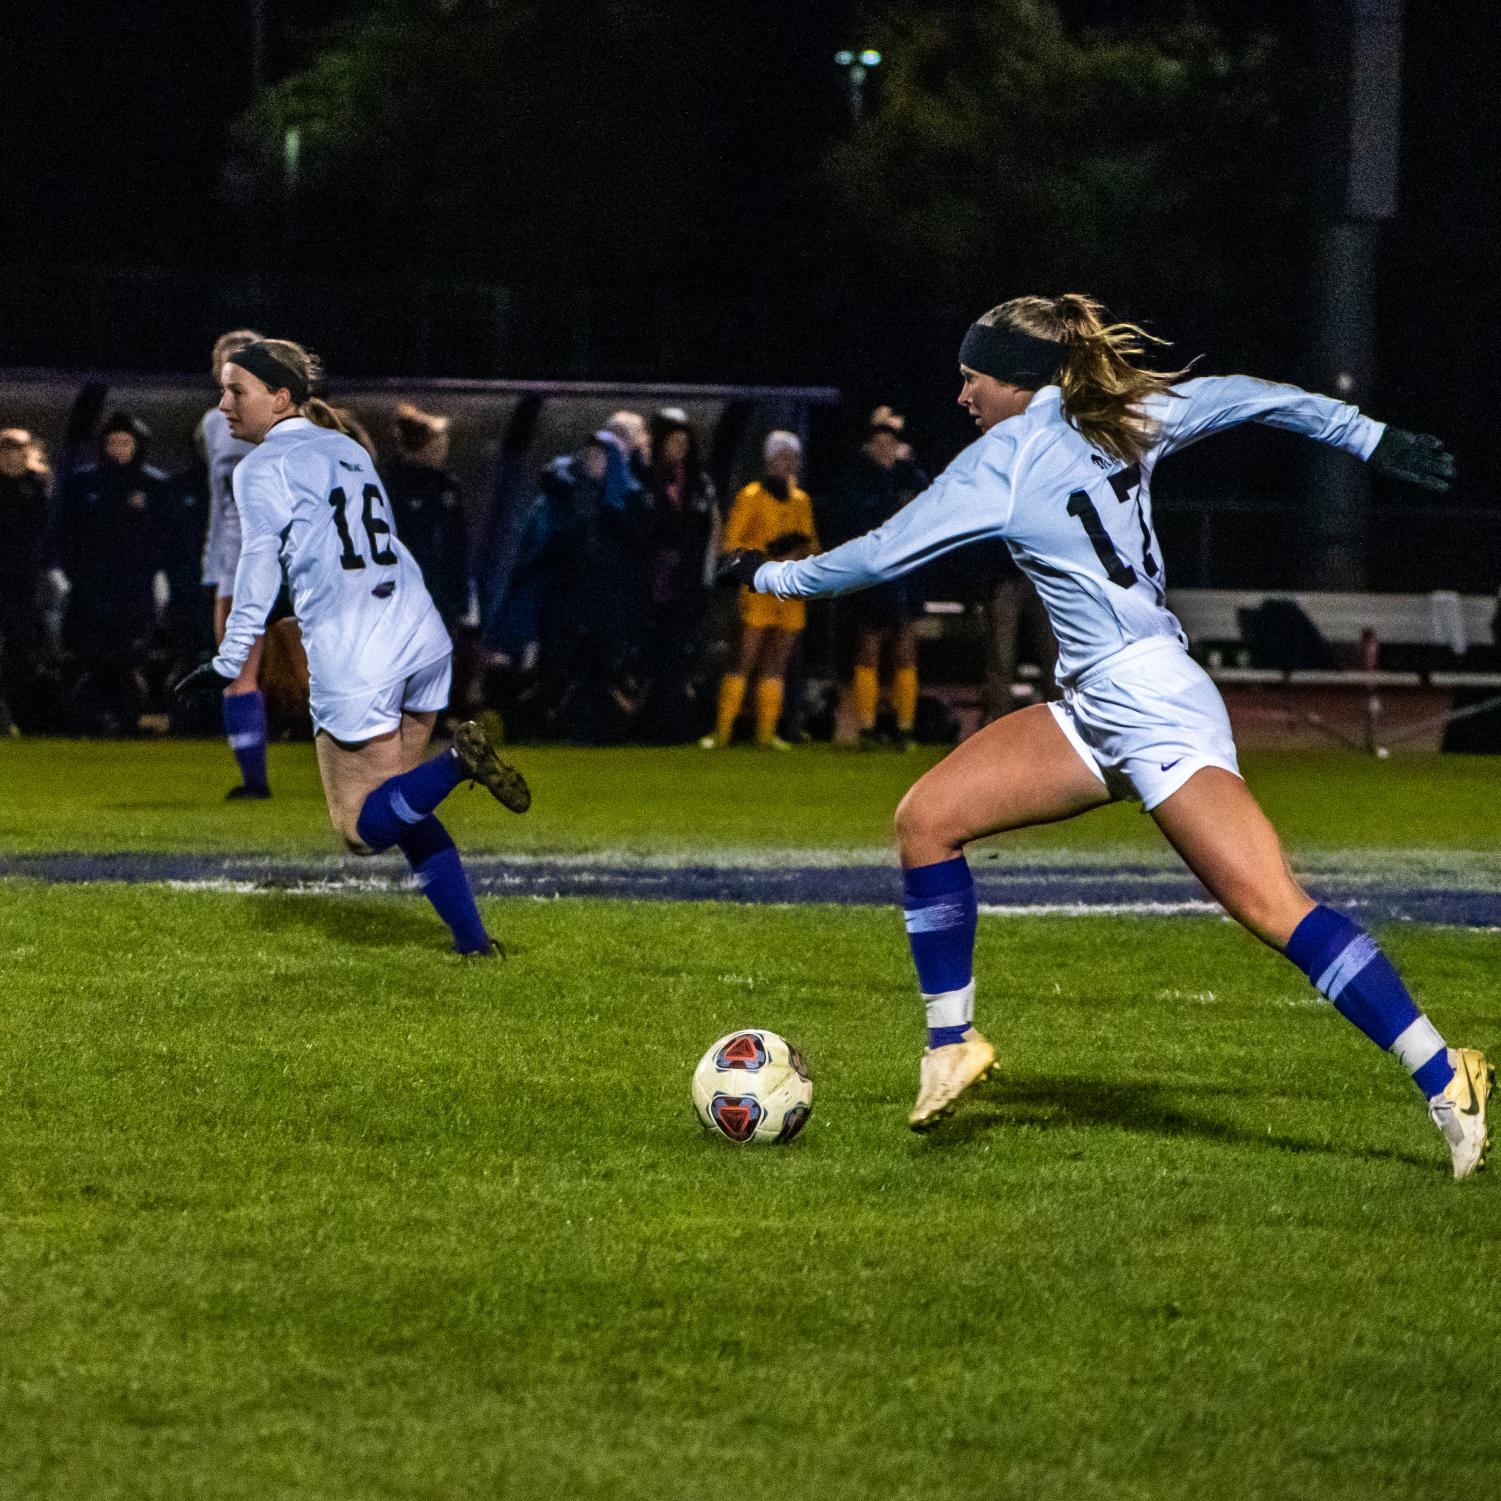 Katie Kusswurm dribbles the ball up the field on Oct. 30 against Eau Claire at Fiskum Field.